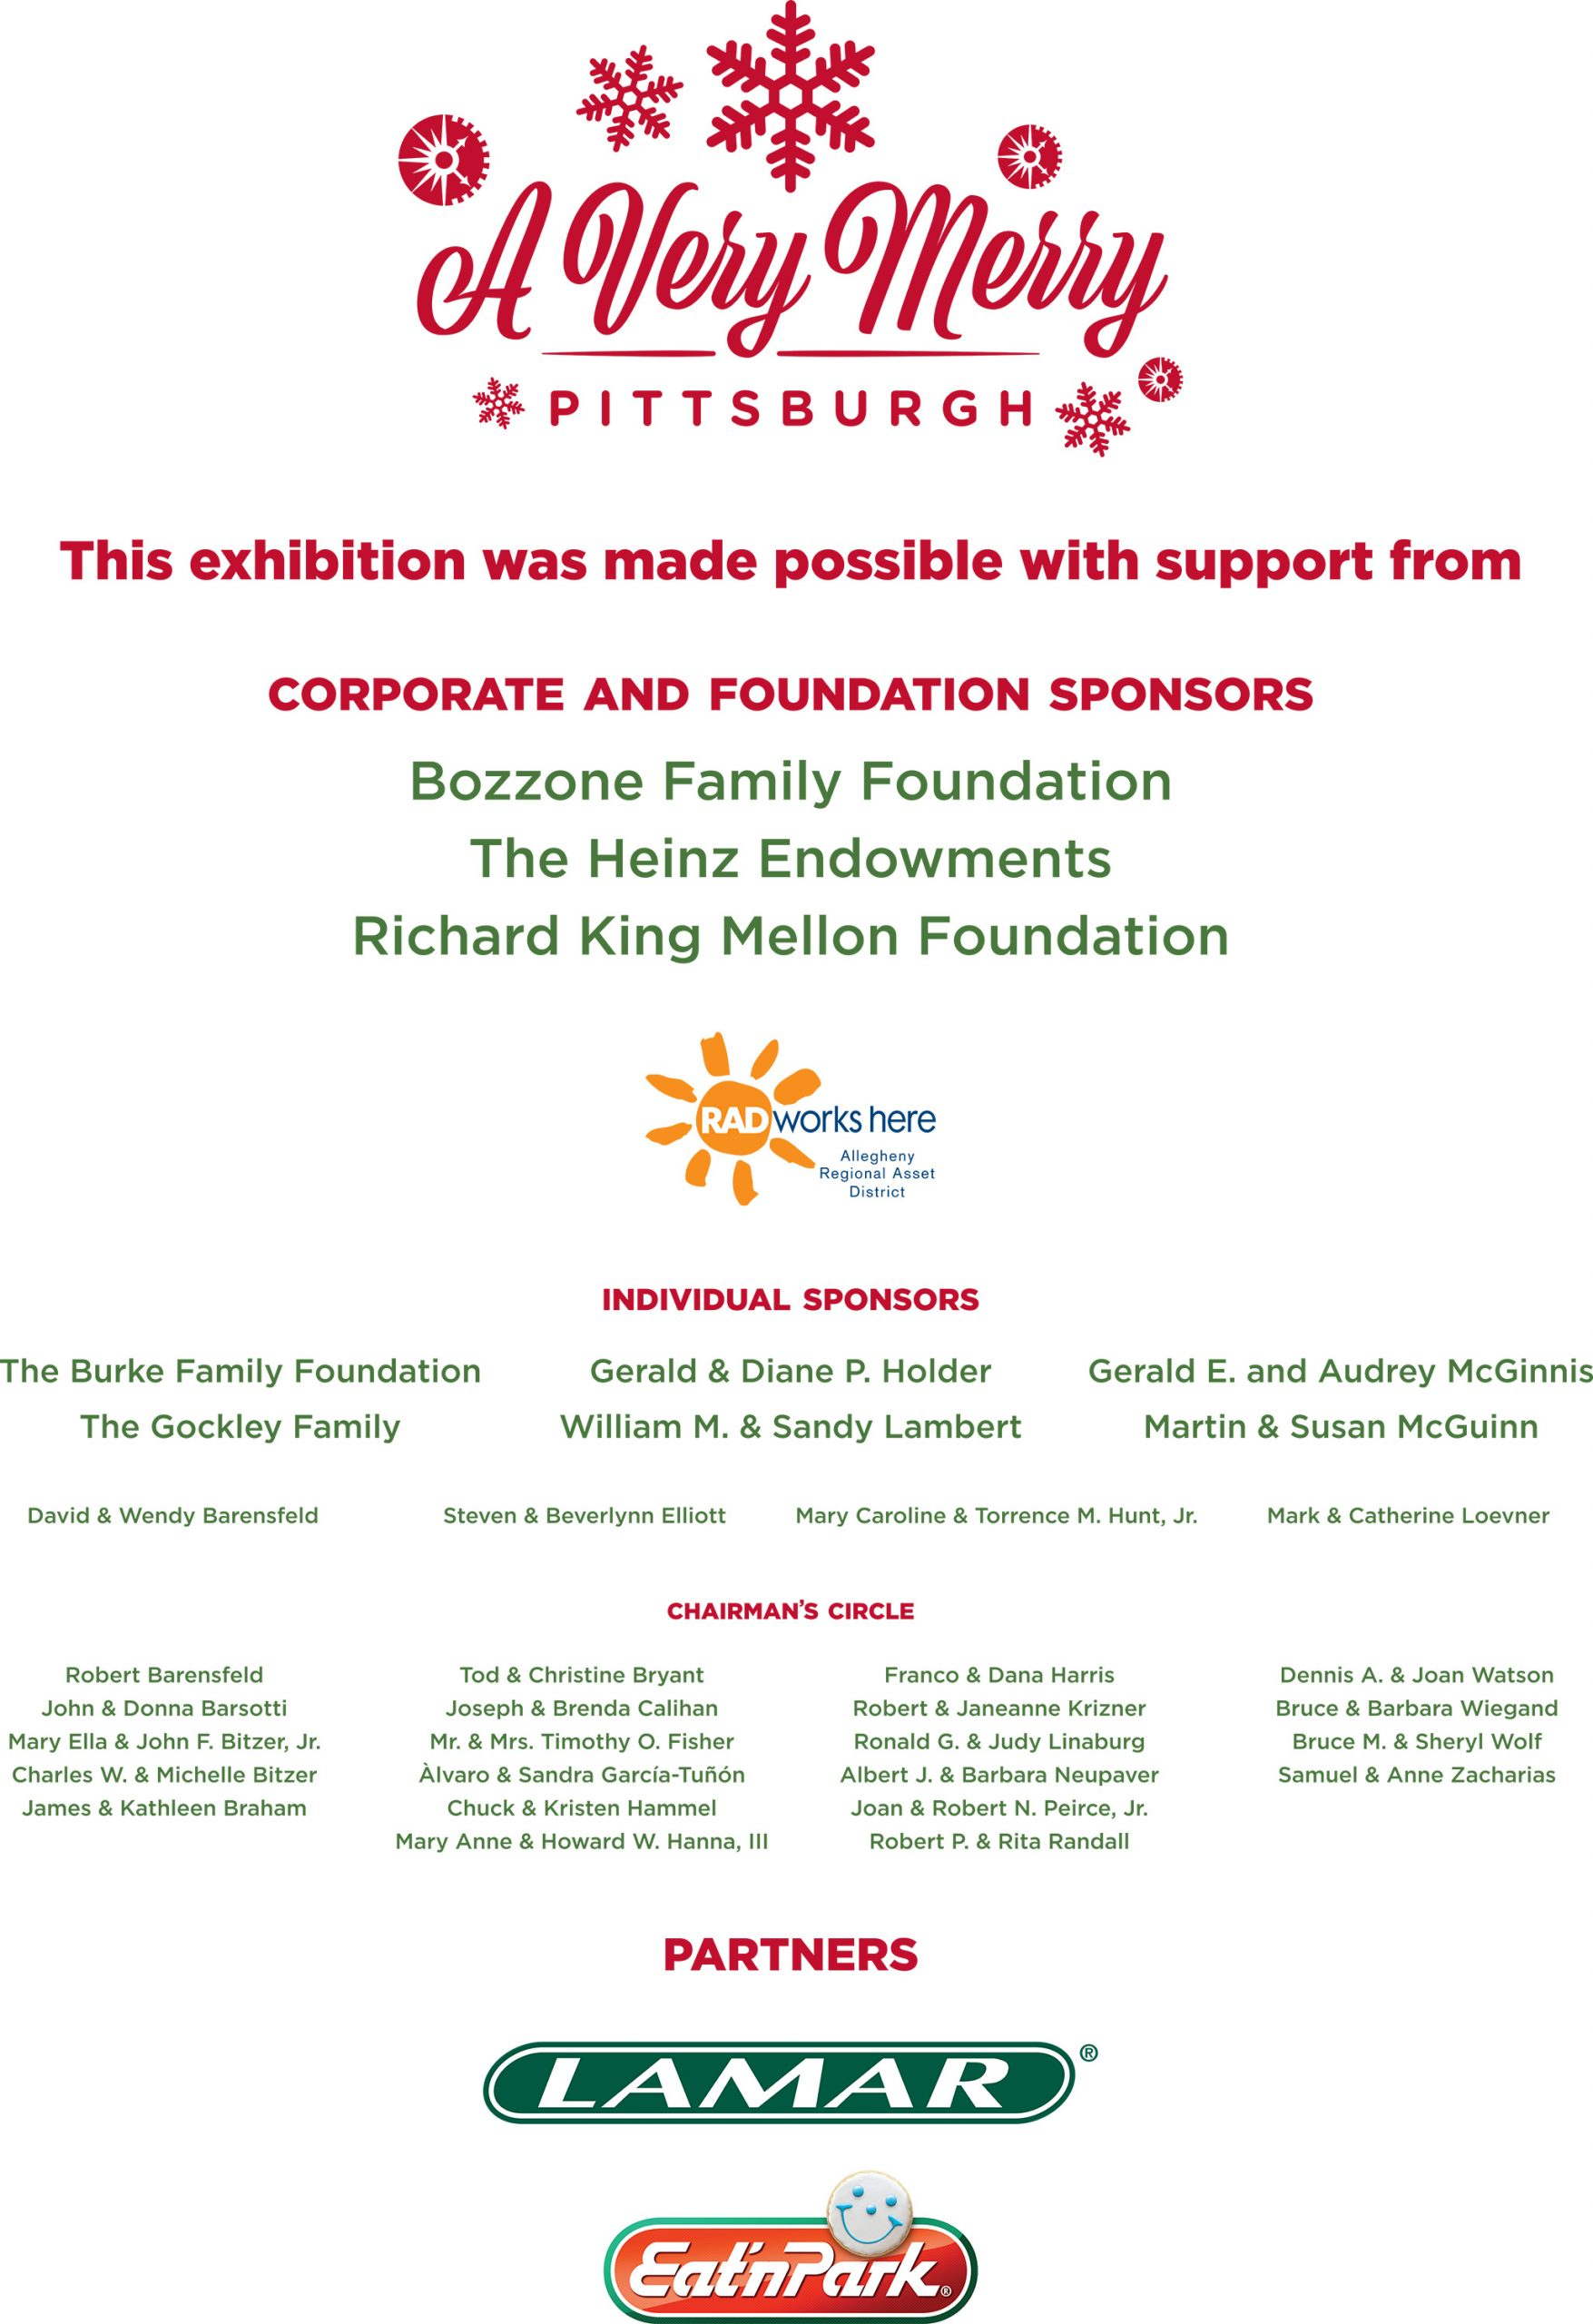 Sponsors: A Very Merry Pittsburgh